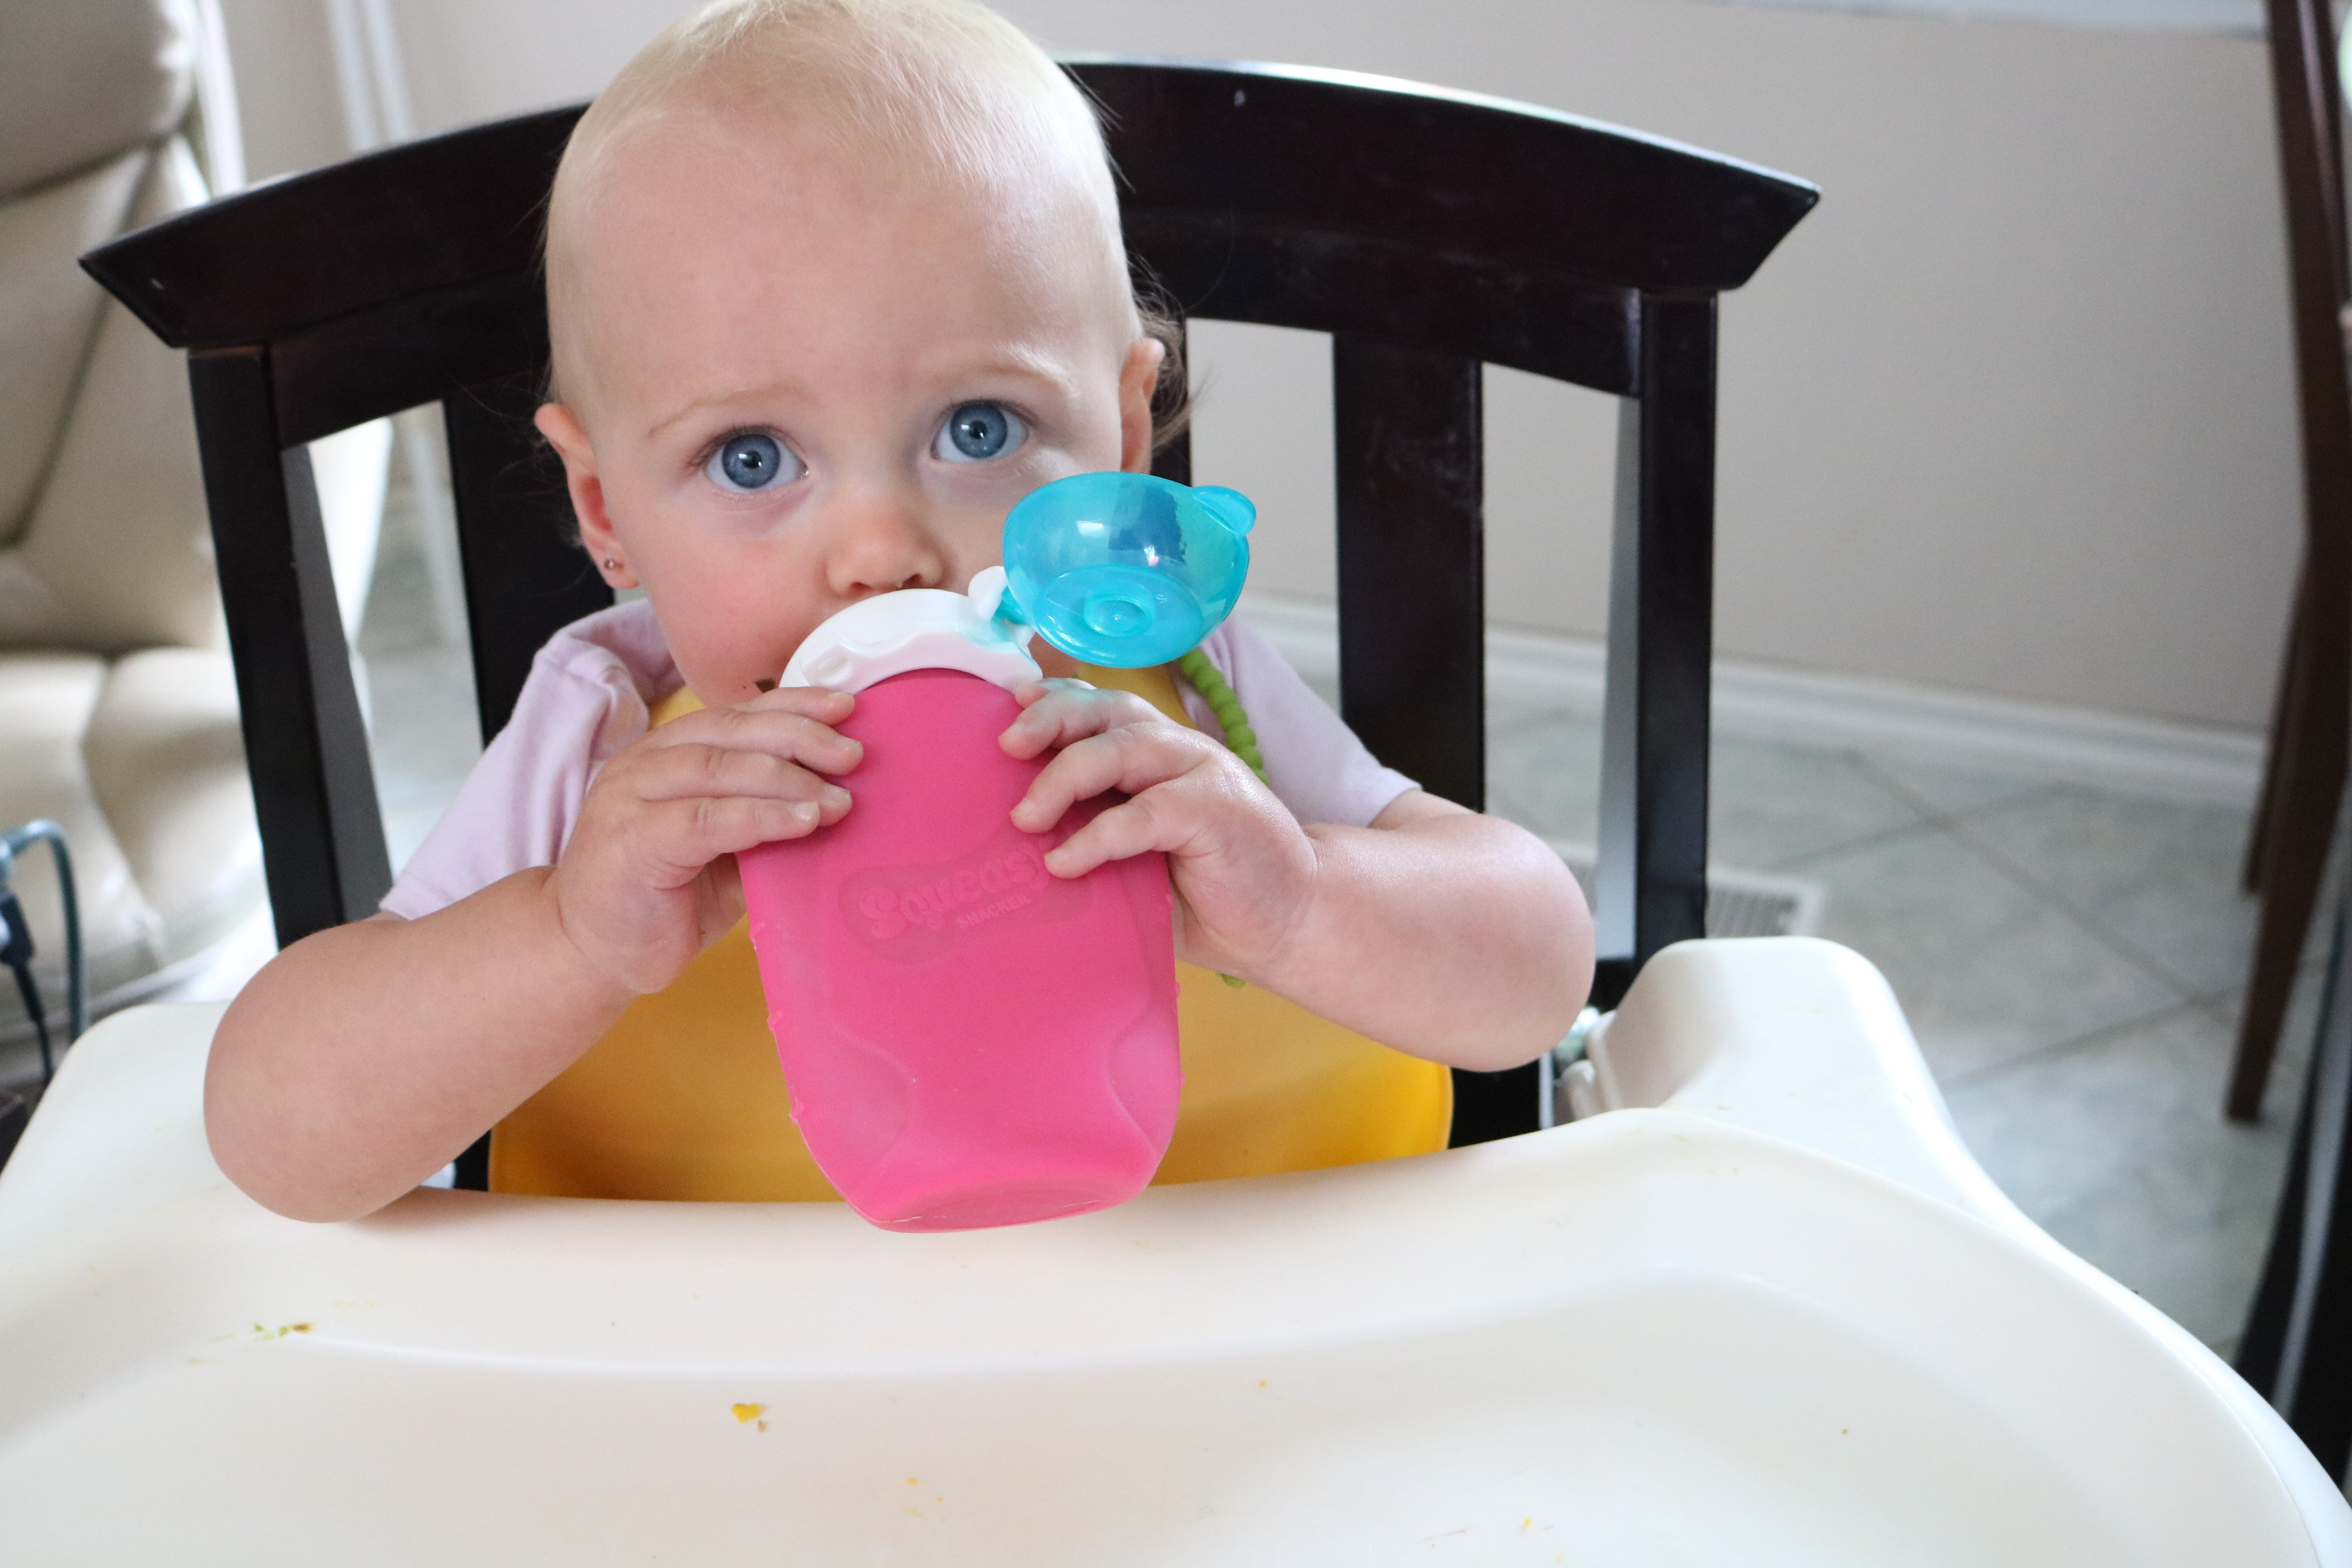 Baby eating smoothie